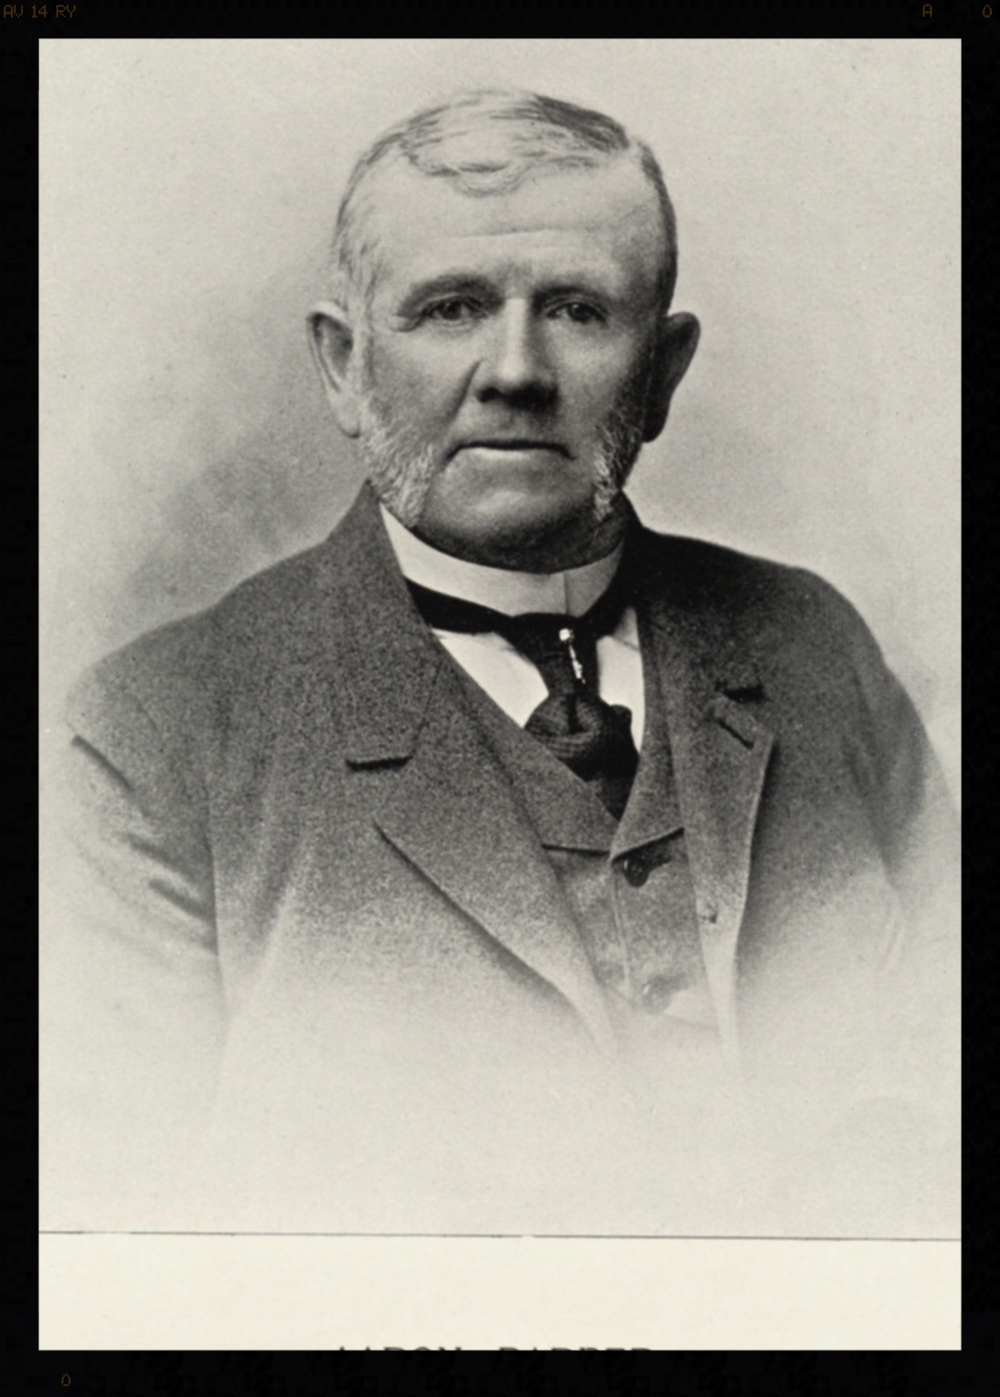 Aaron Barber III . Source: Mulligan Family private collection